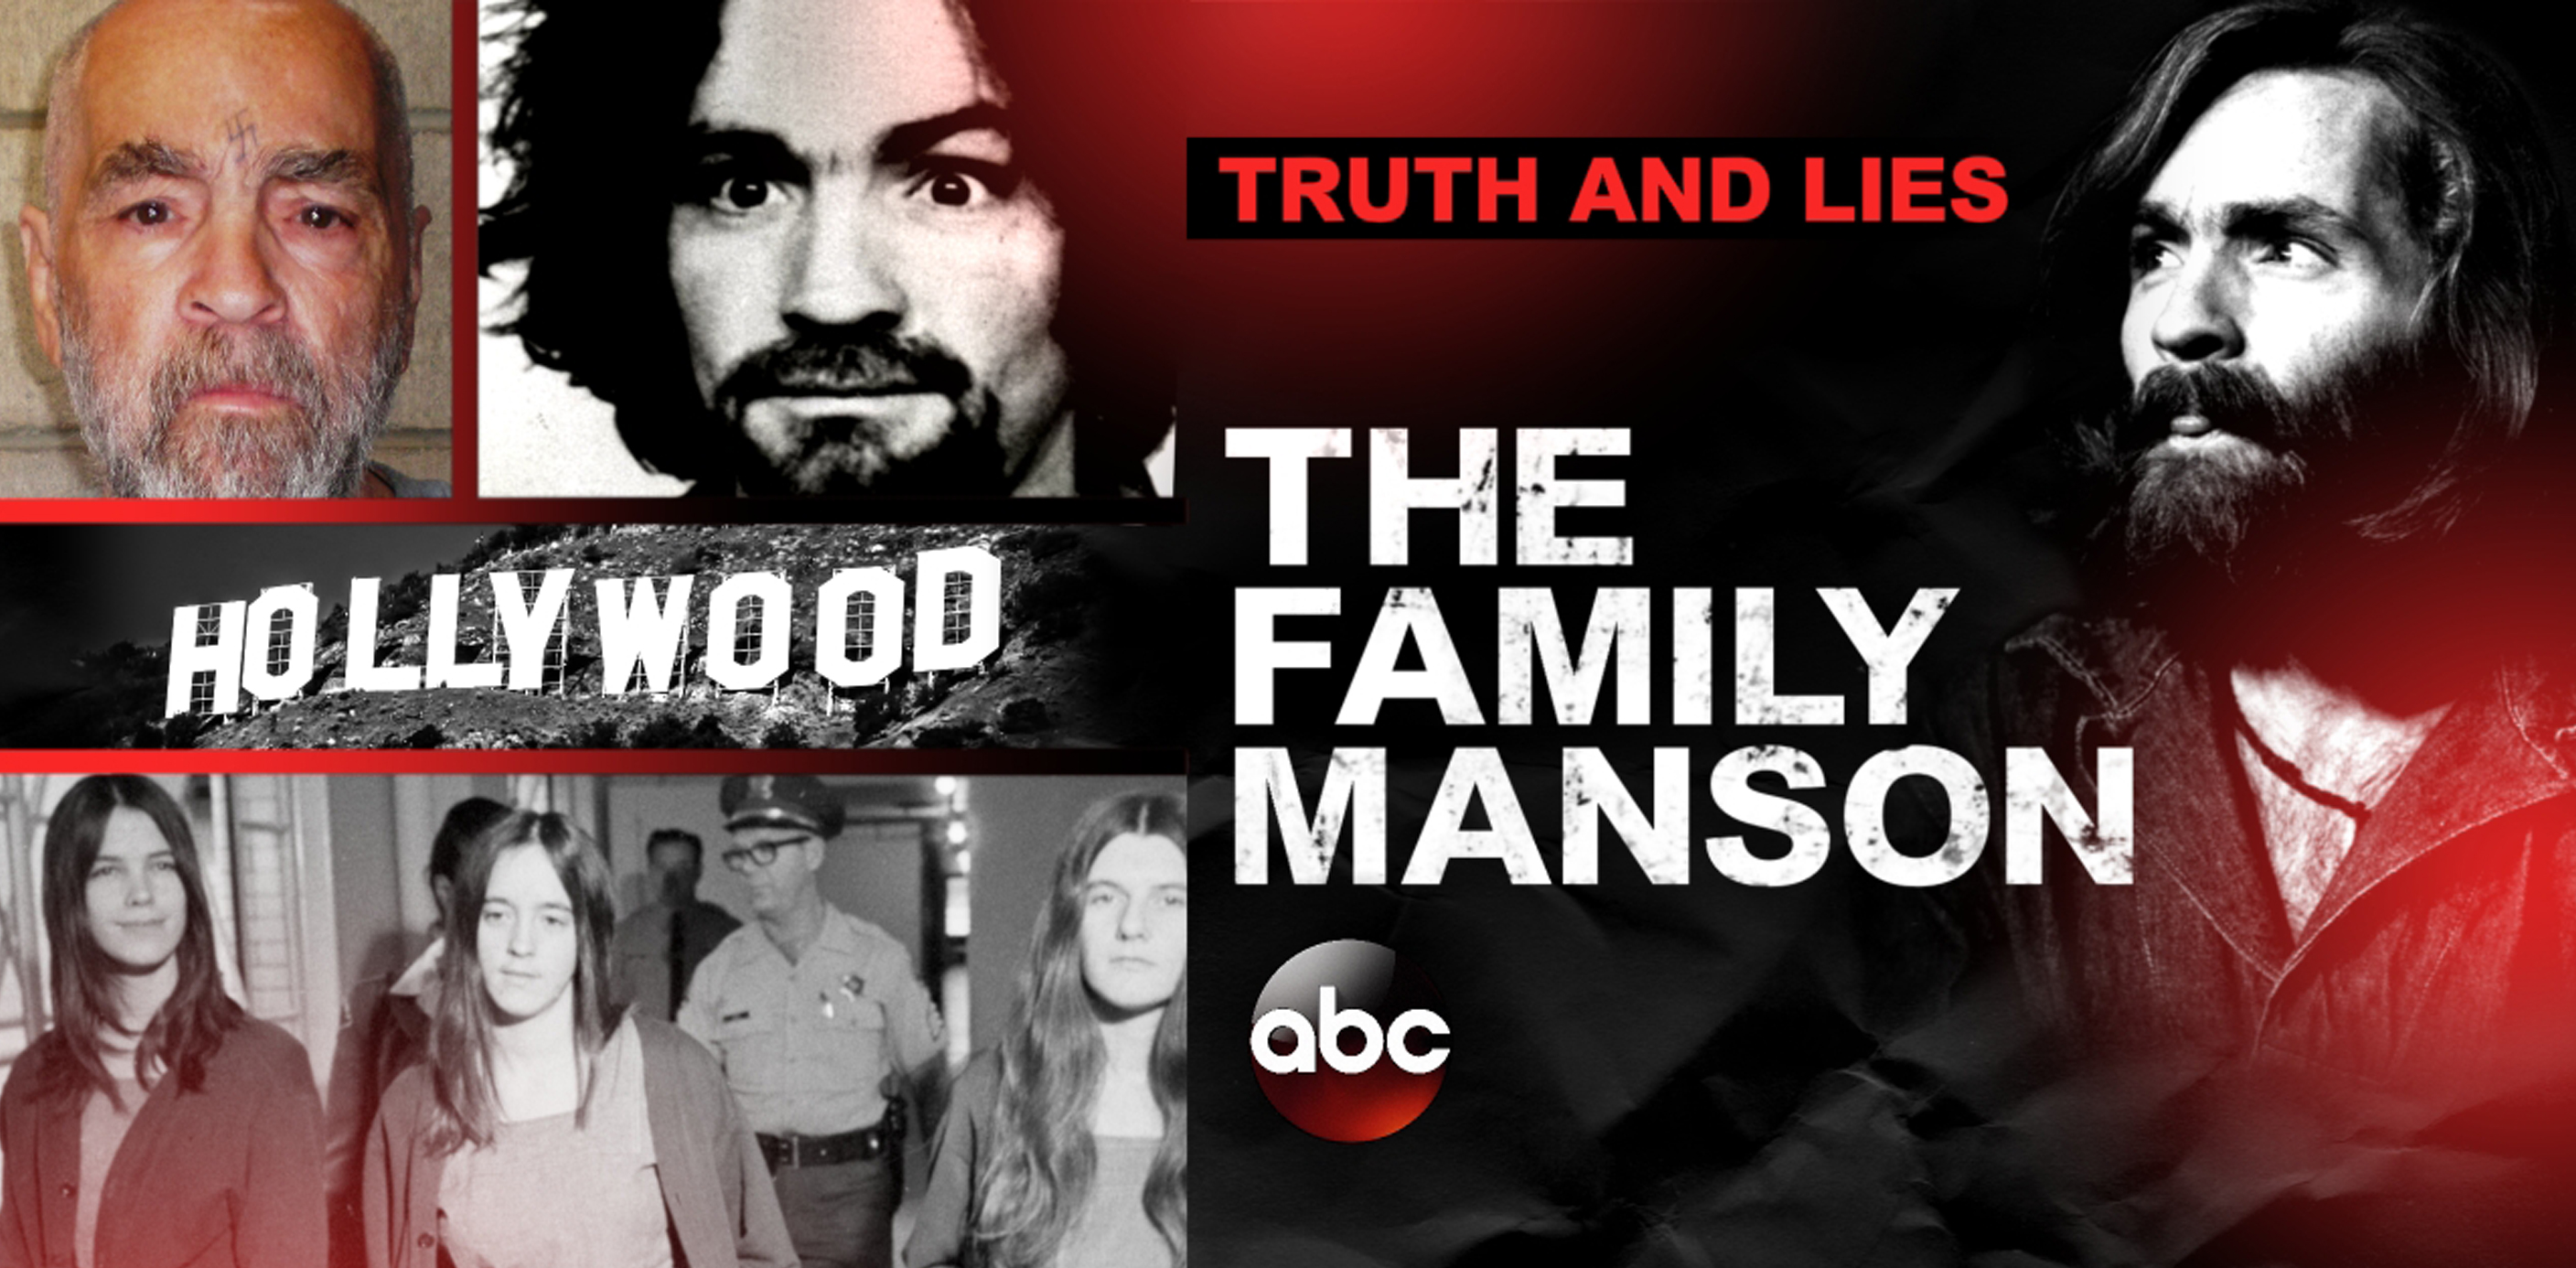 Truth and Lies: The Family Manson - ABC News